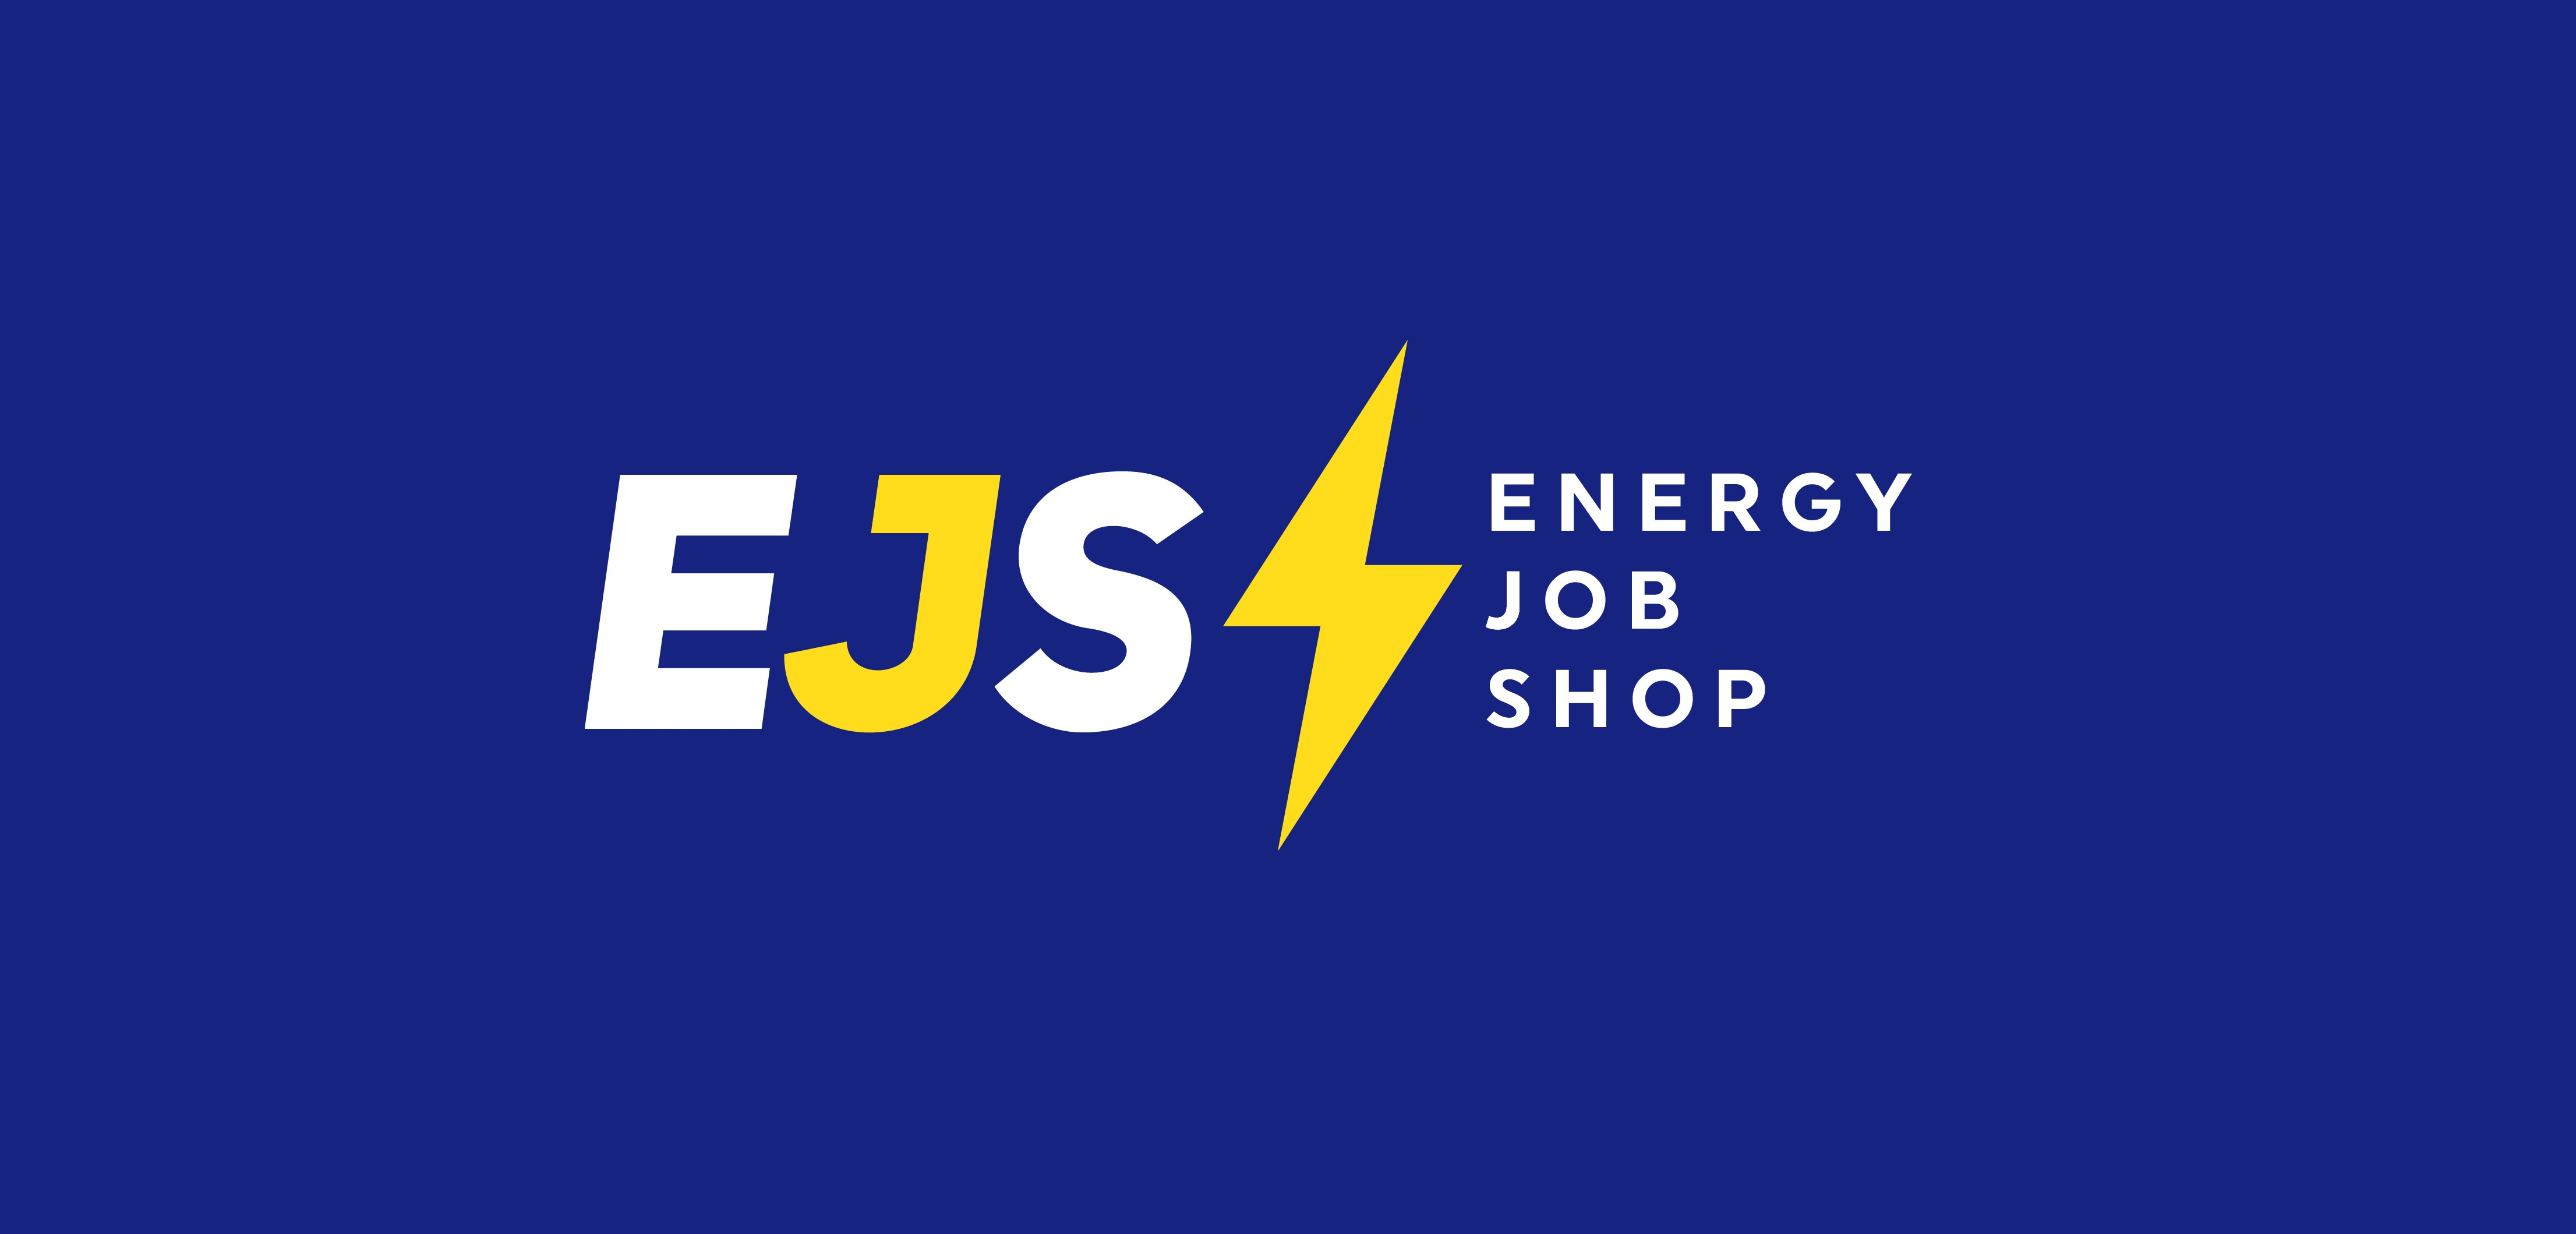 Oilfield Job Shop is becoming Energy Job Shop!